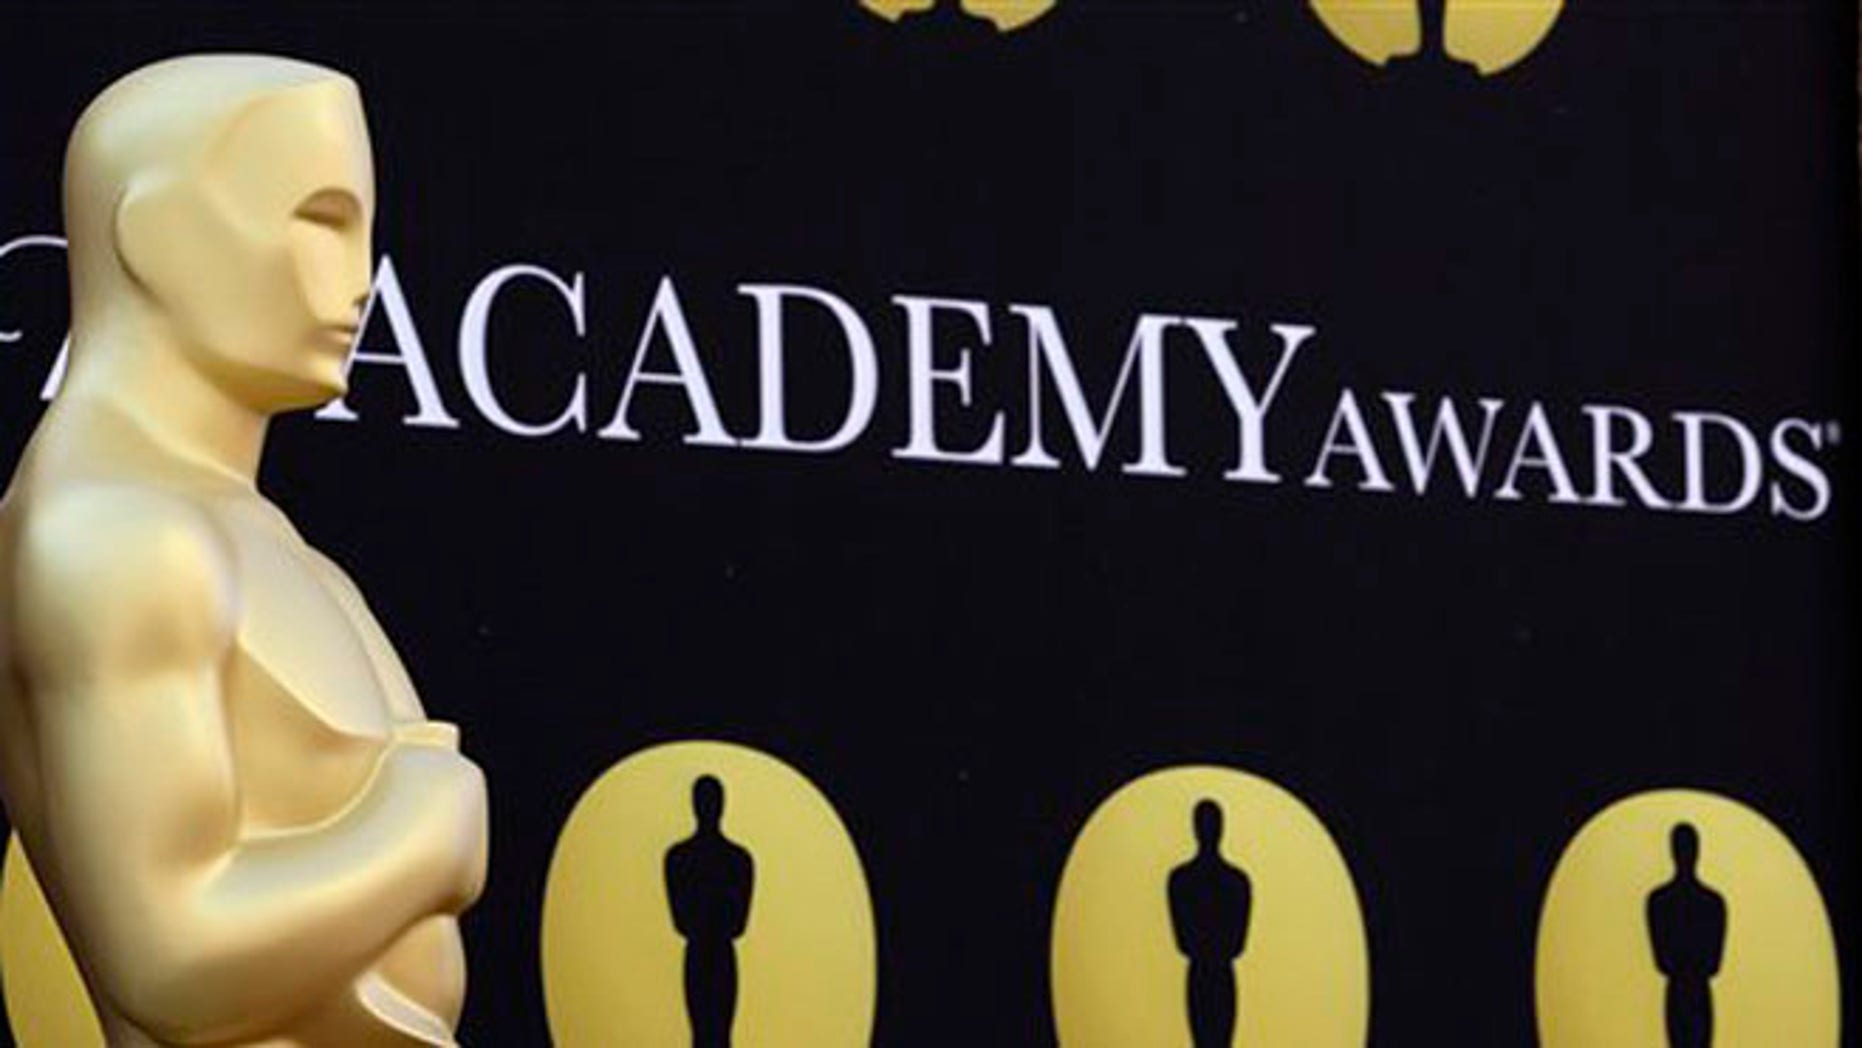 March 5, 2010: In this file photo, an Oscar statue stands on the red carpet outside the 82nd Academy Awards in Los Angeles, Calif.